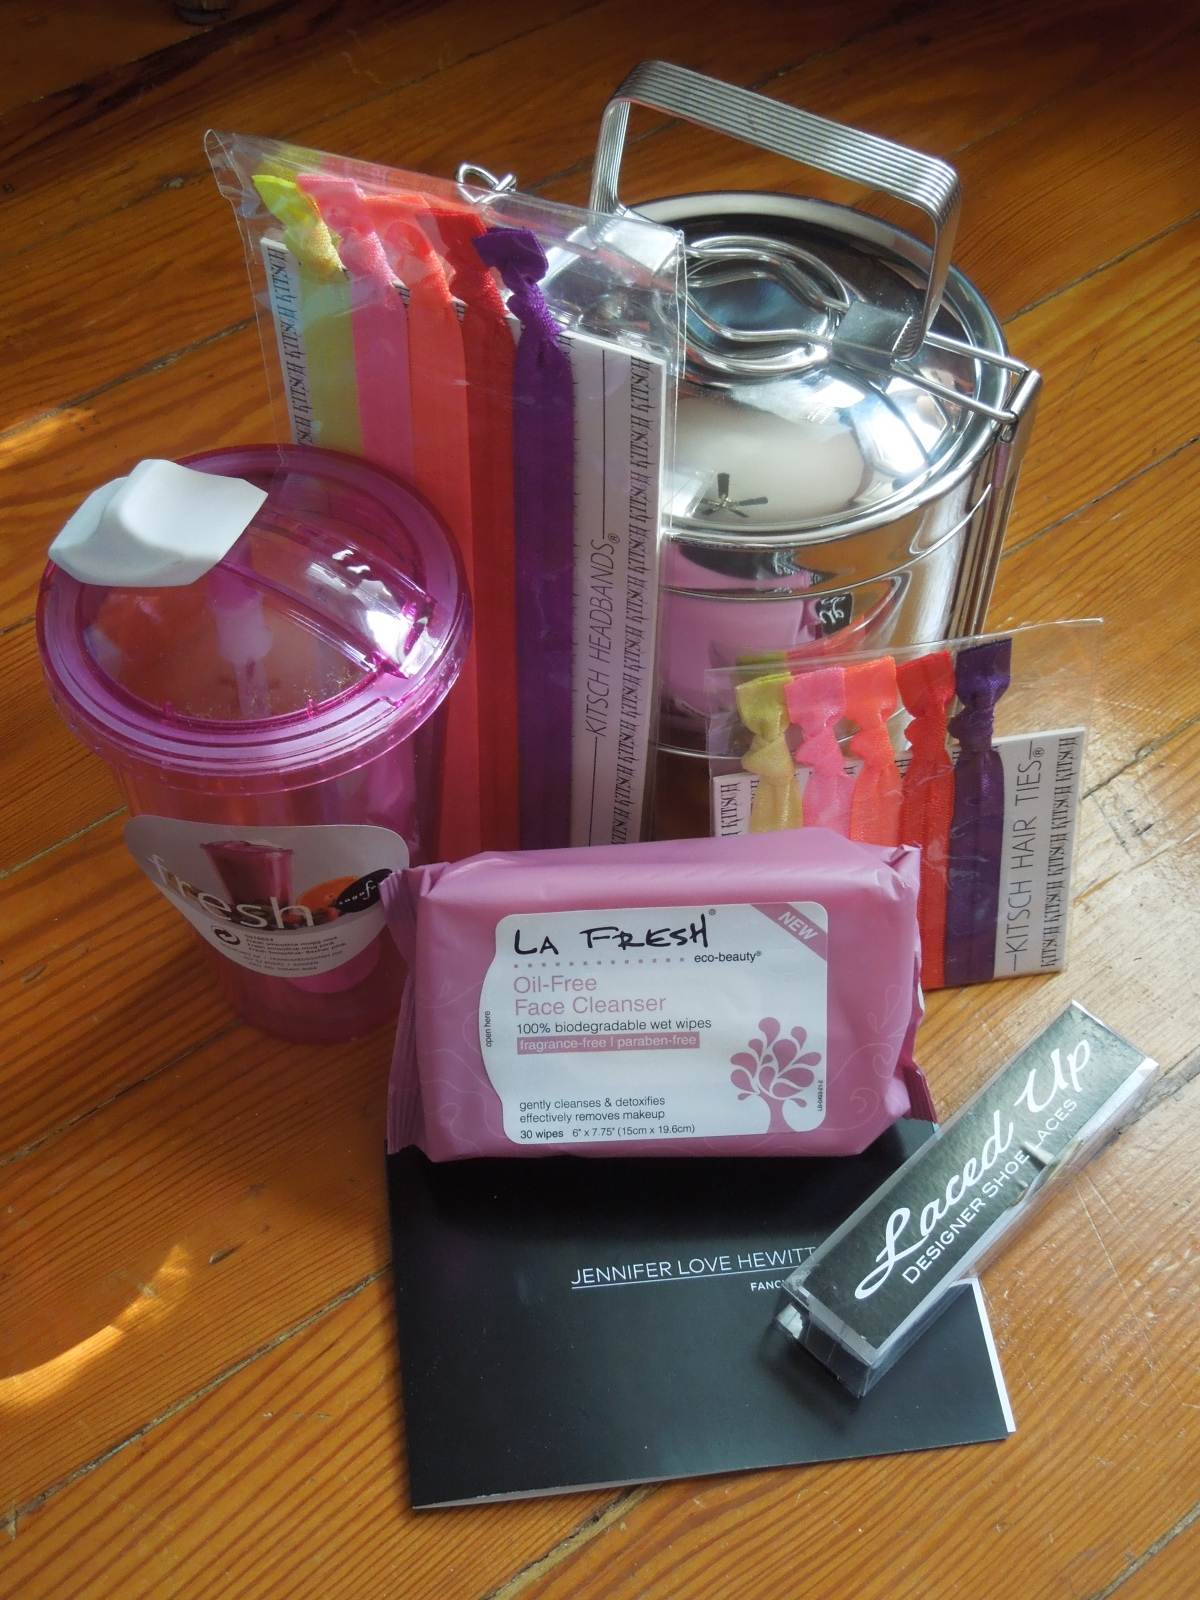 Jennifer Love Hewitt Fancy Box: August 2014